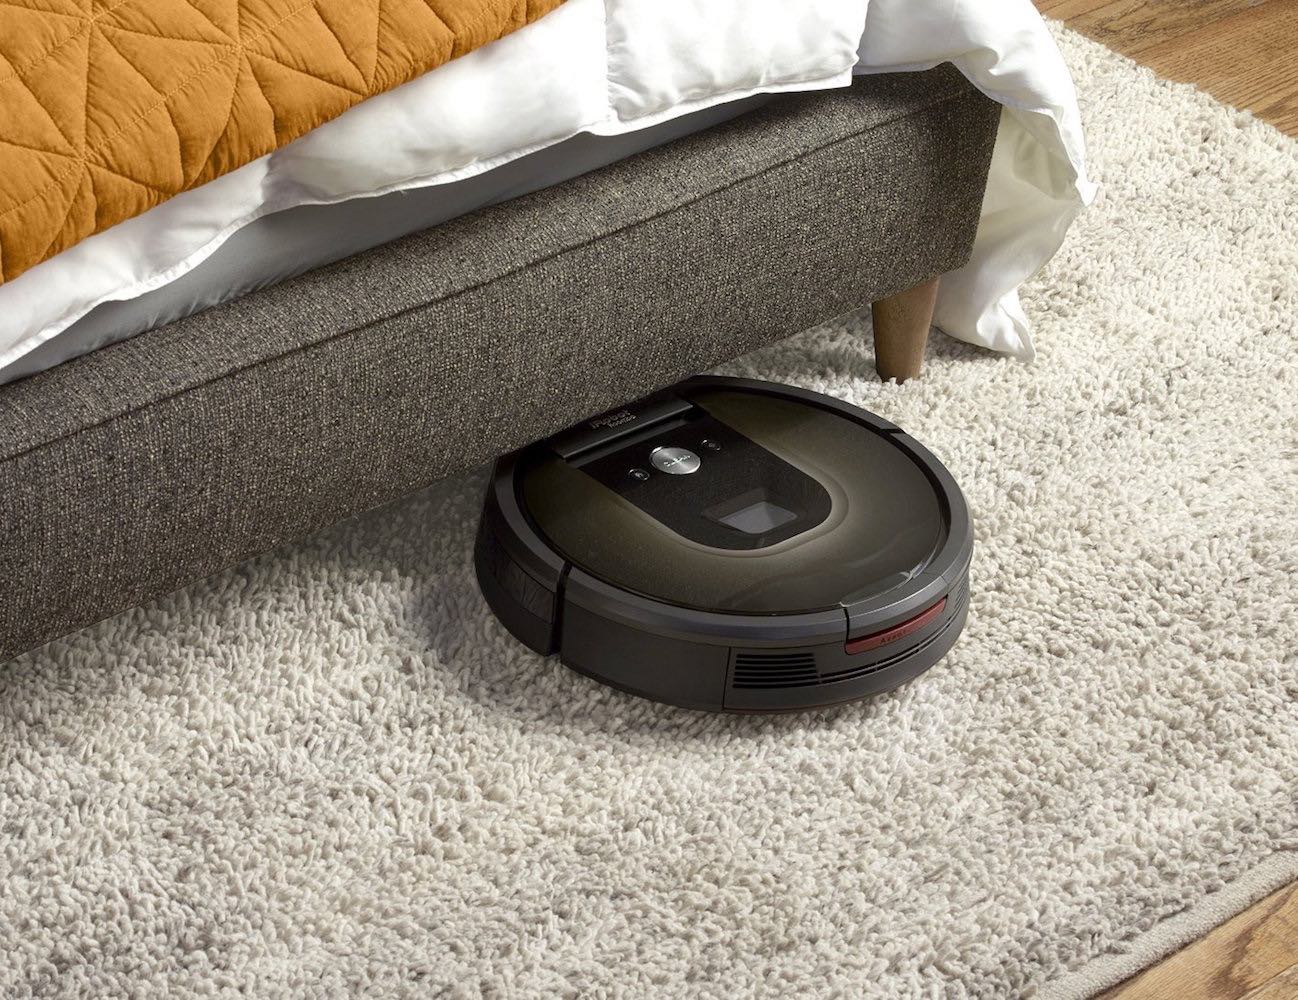 iRobot Roomba 980 vacuum cleaning robot can navigate through your home